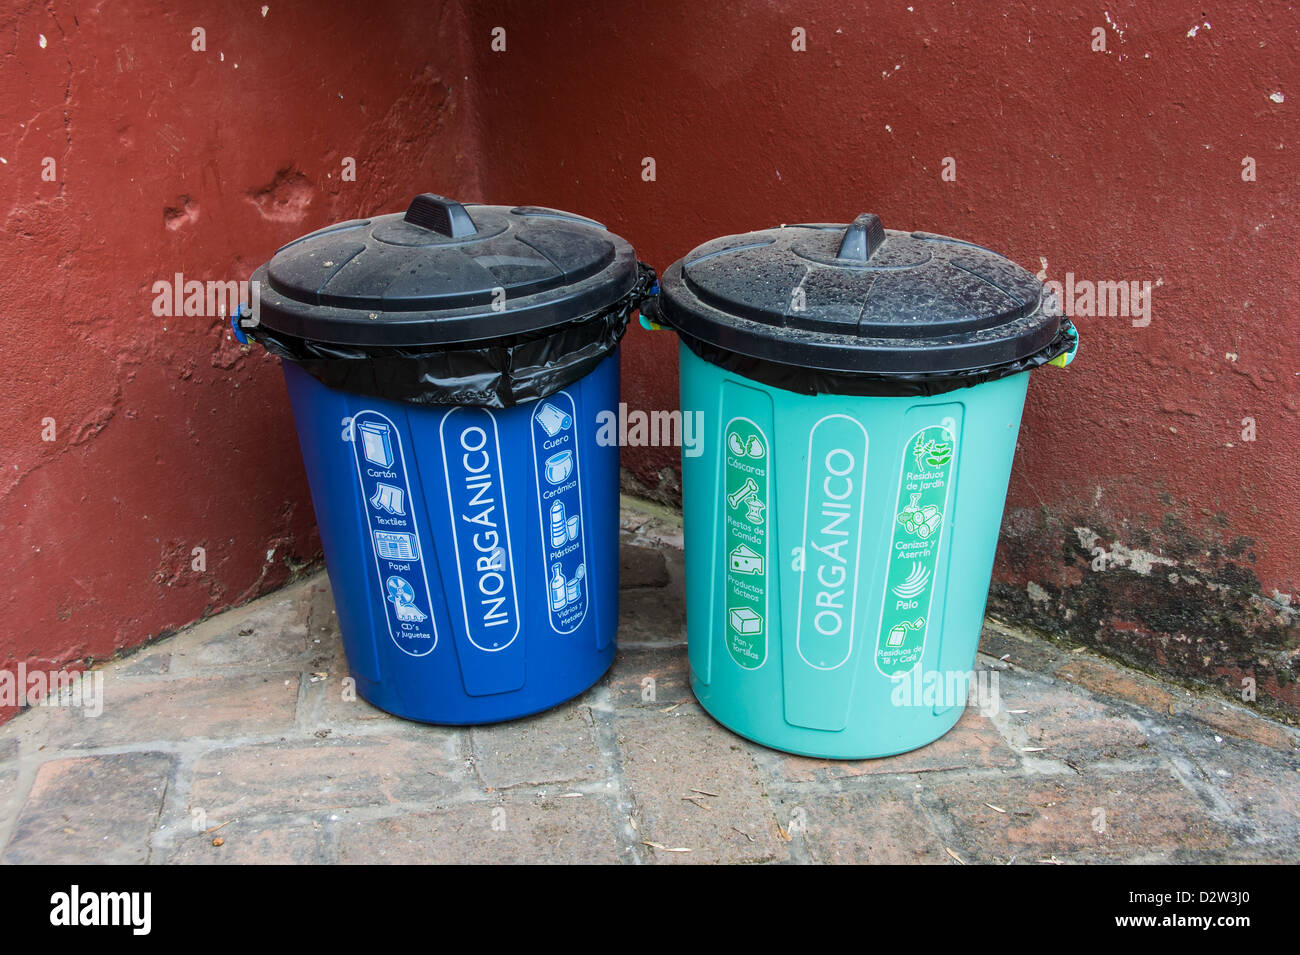 trash cans in Mexico with Spanish text - Stock Image